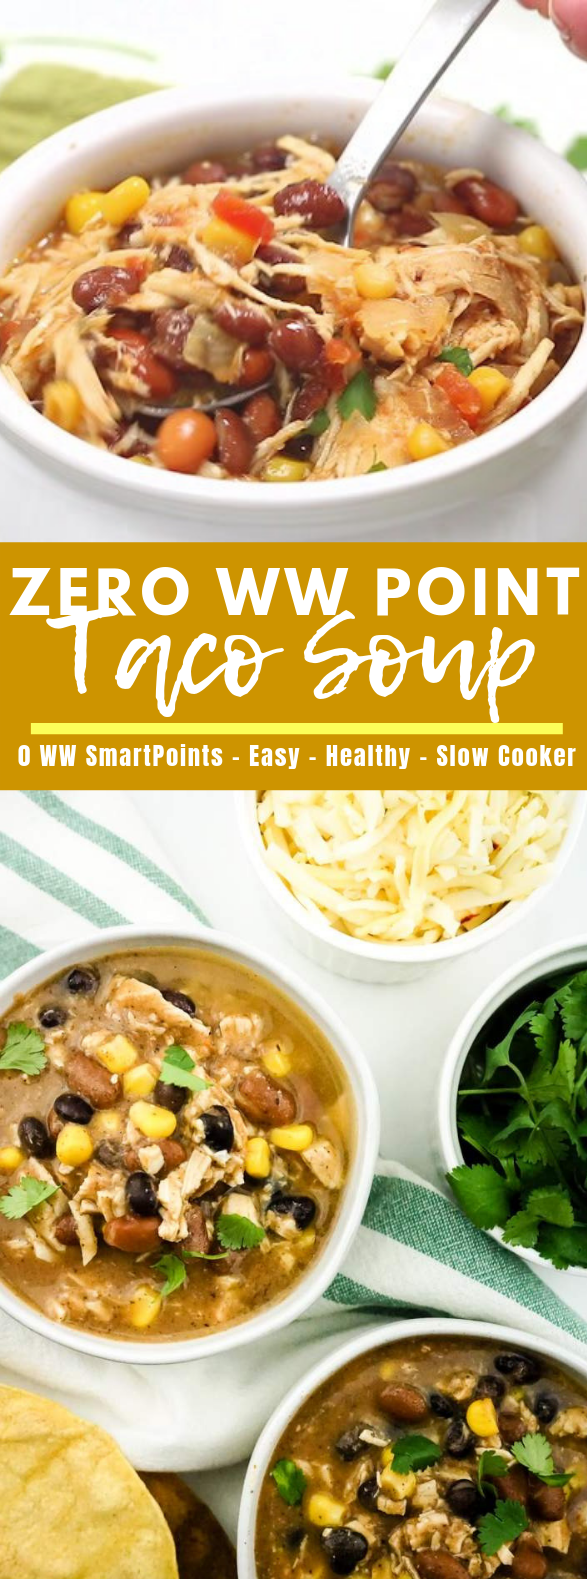 Zero Point Weight Watchers Taco Soup #slowcooker #diet